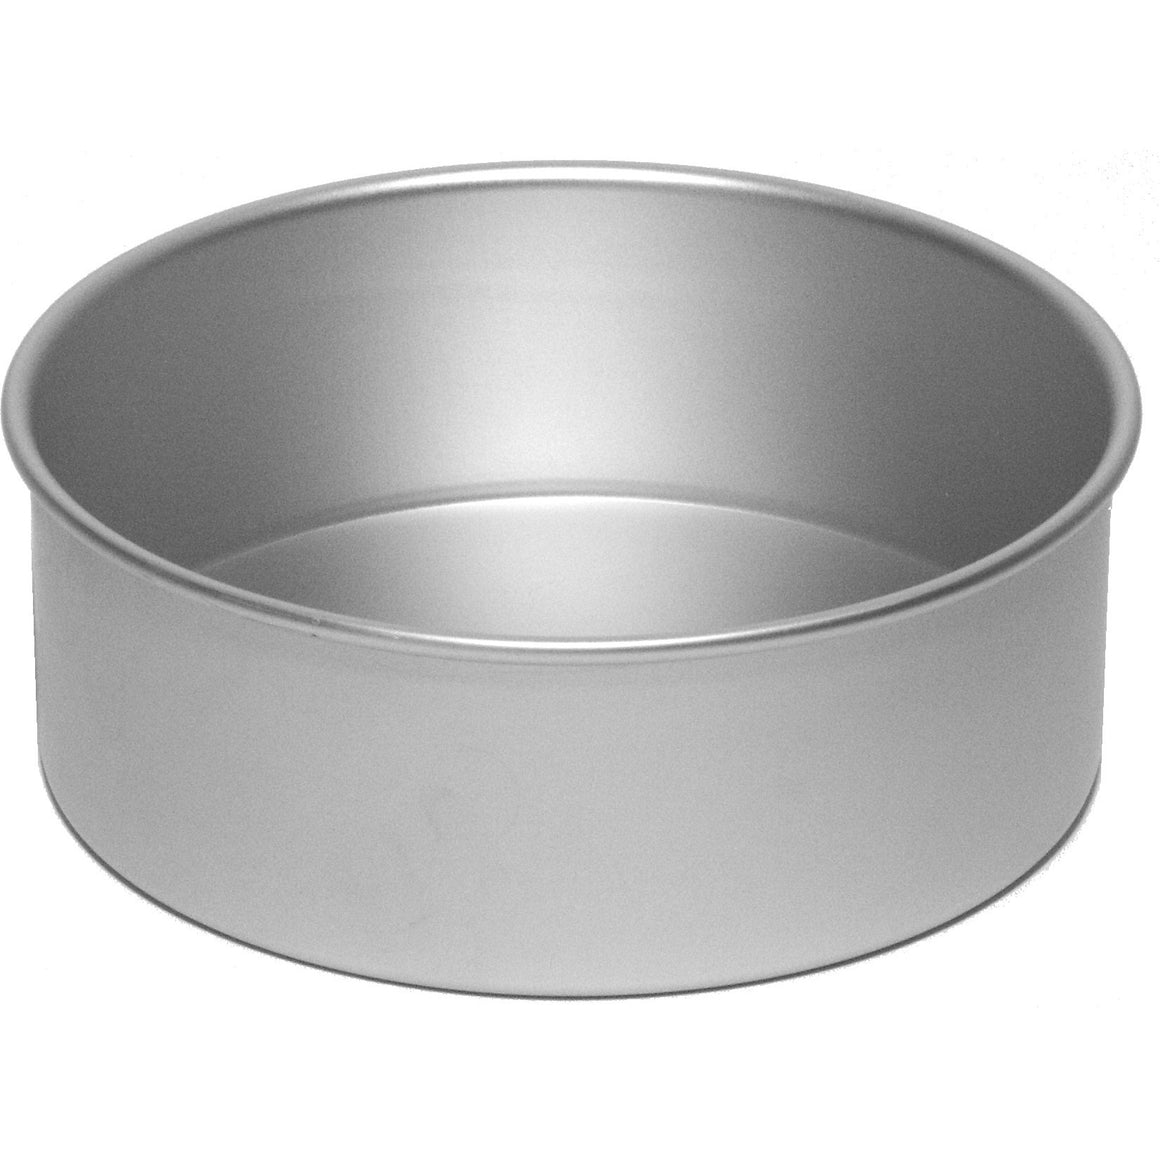 "Silverwood 9"" Deep Round Solid Base Cake Tin"